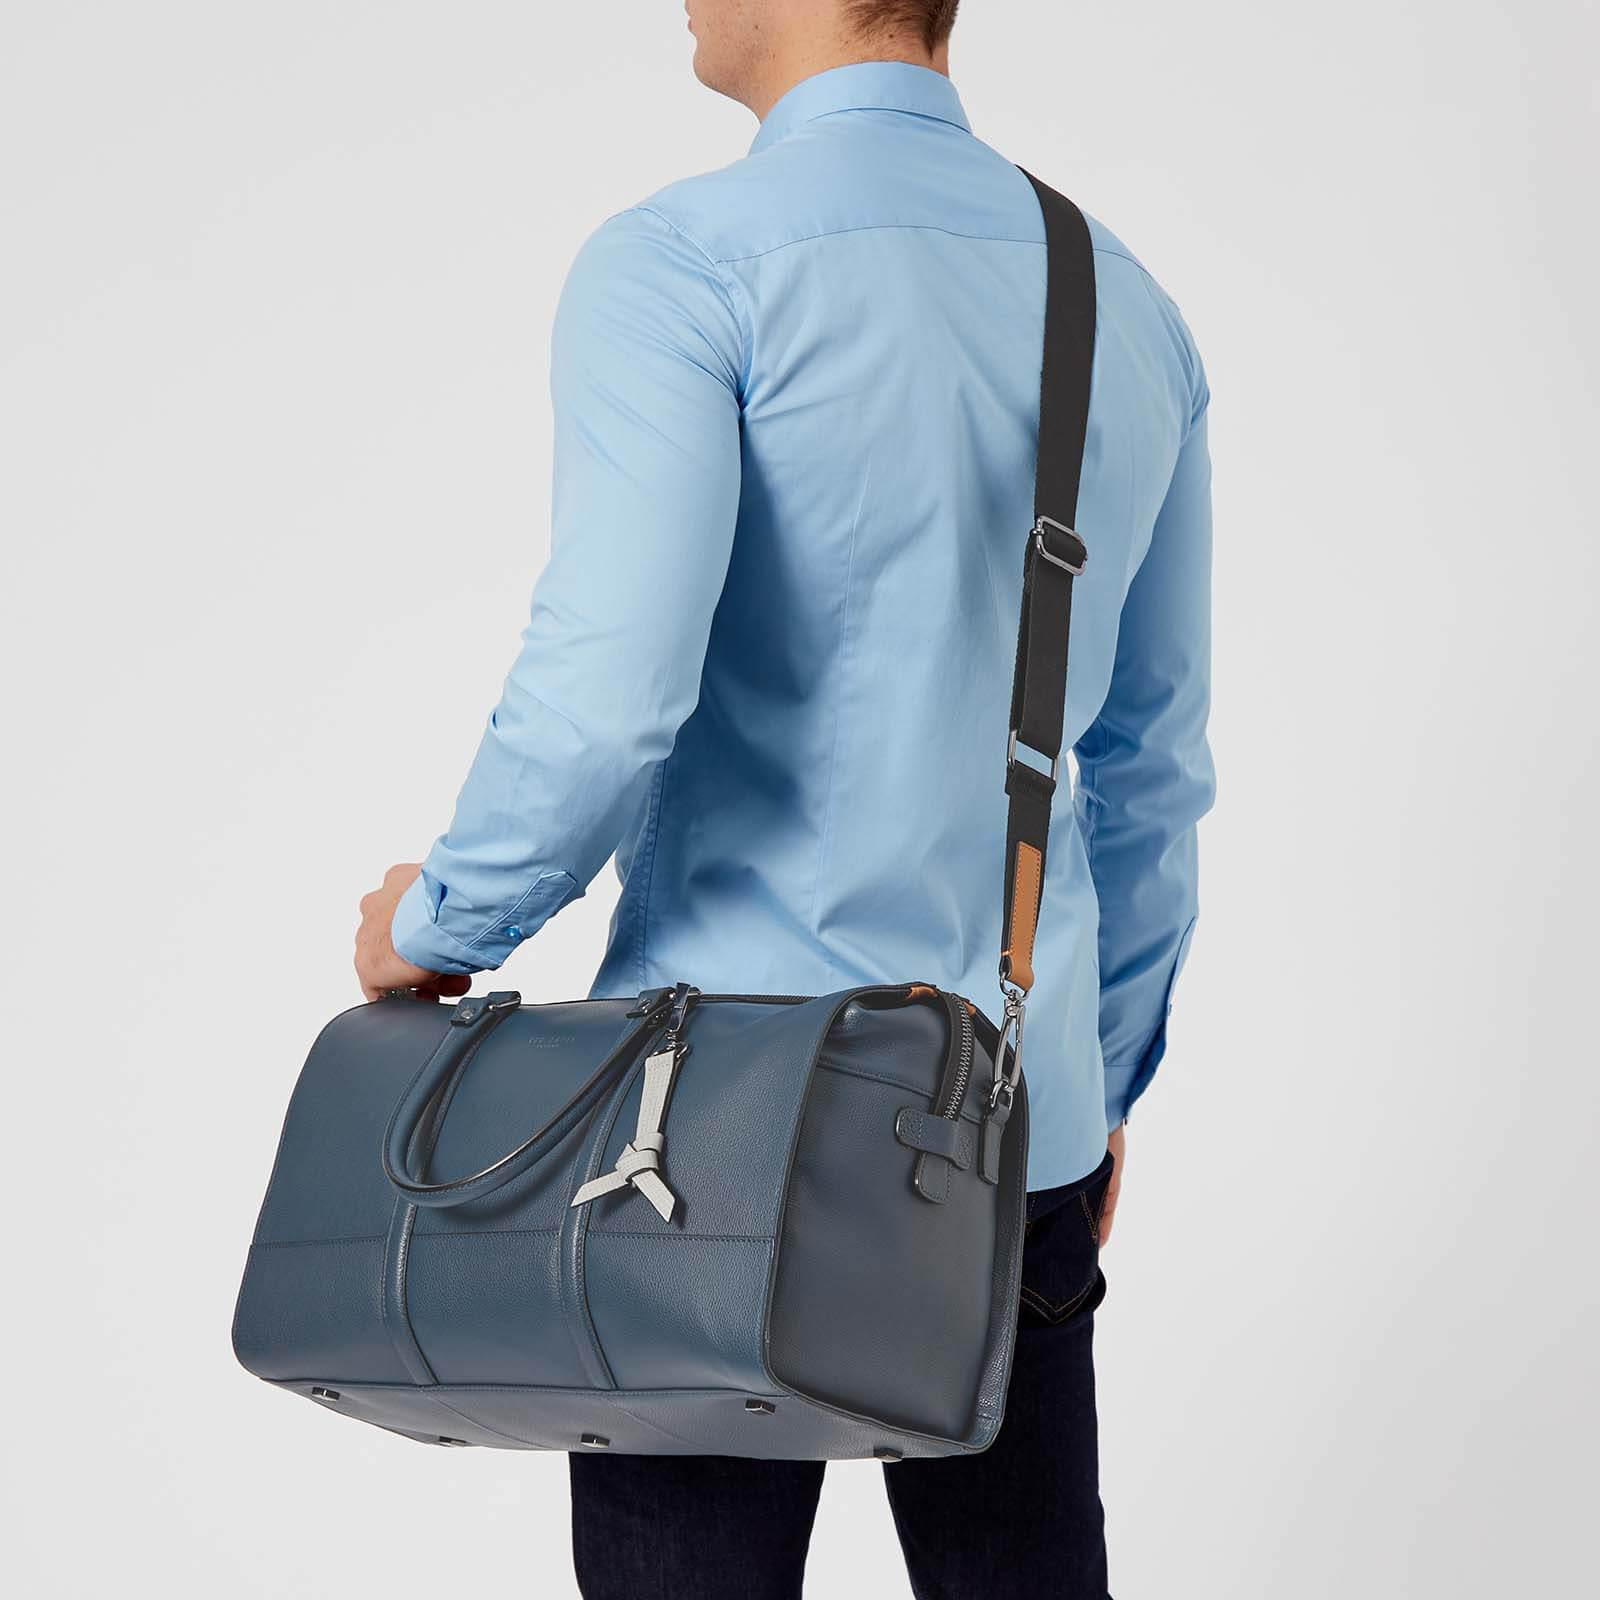 f8c2dcbec4b0a Lyst - Ted Baker Radical Leather Holdall Bag in Blue for Men